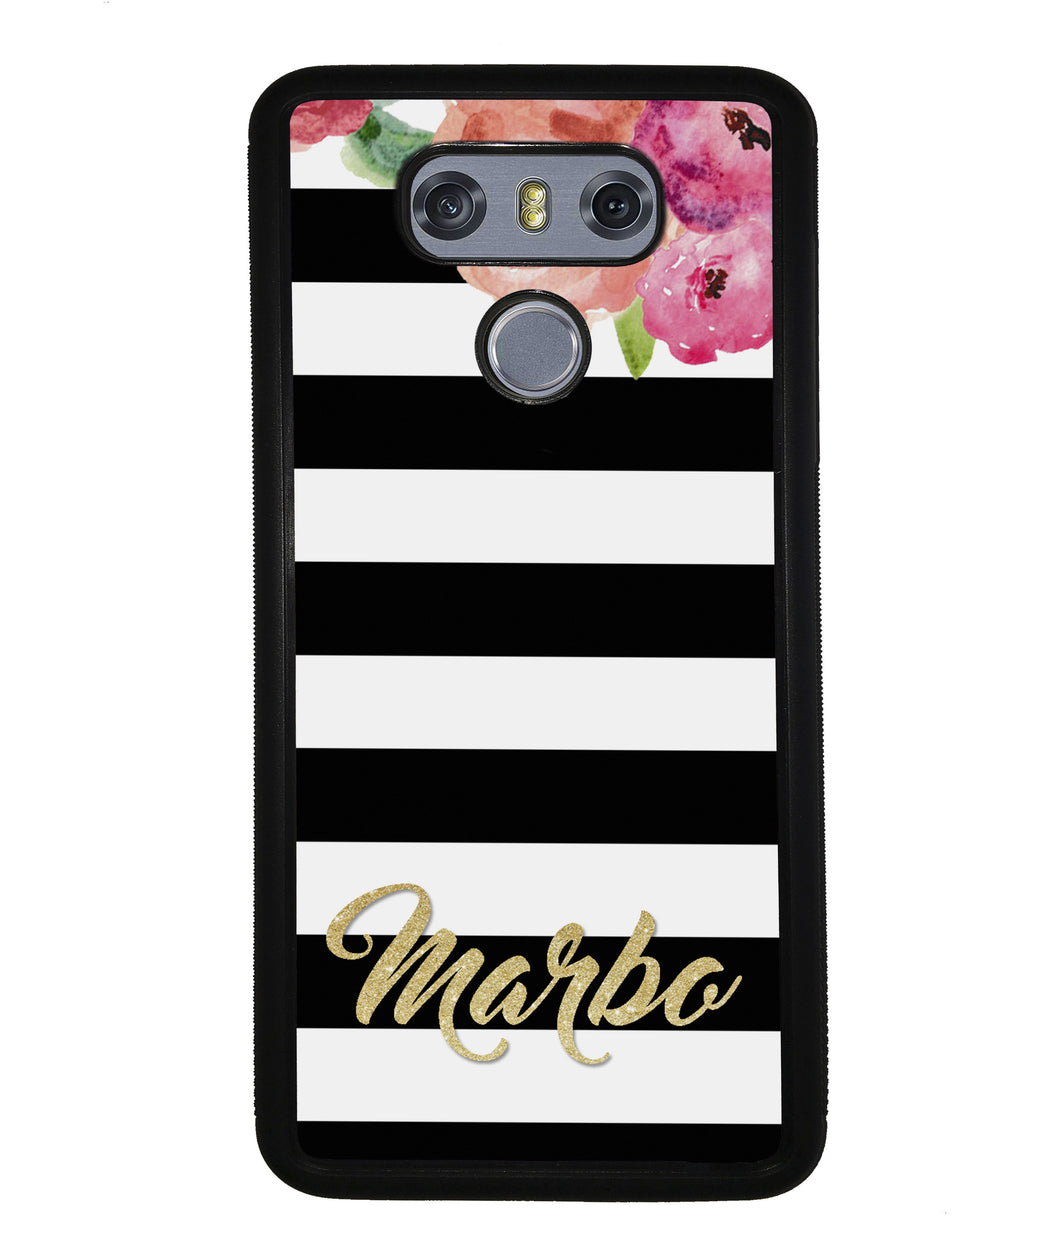 Black & White Bars - Flowers and Gold | LG Case